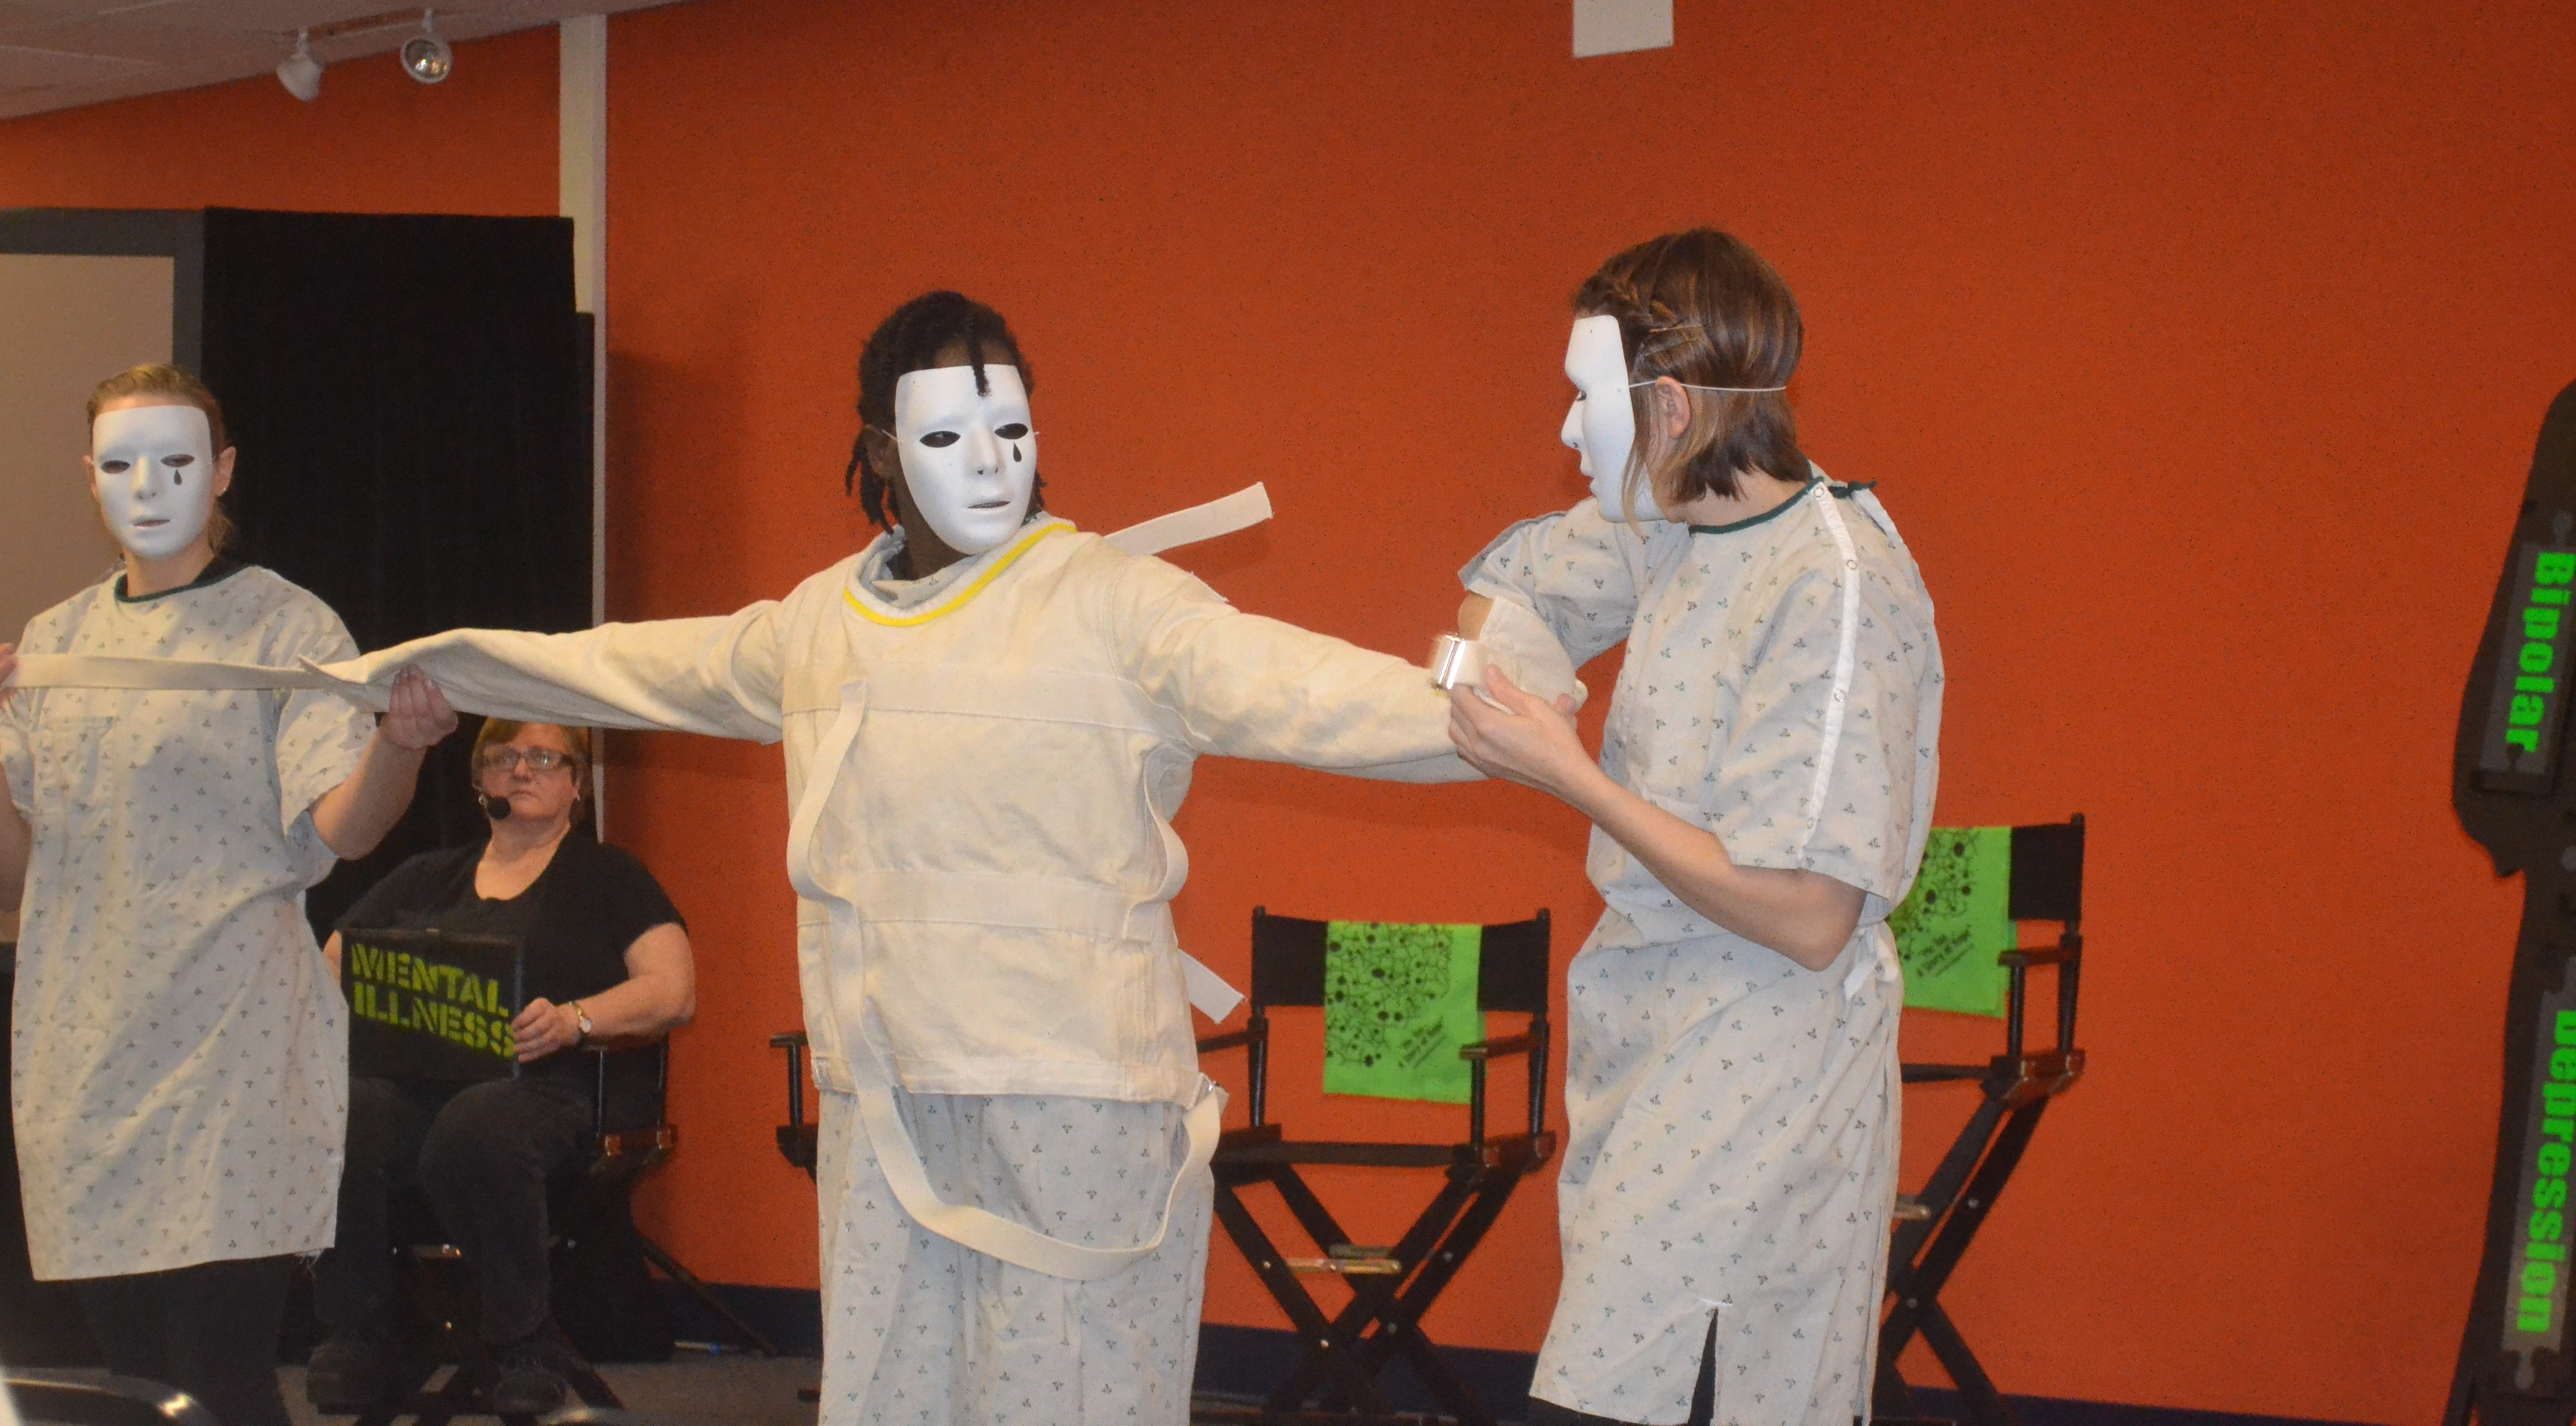 """The theatrical production """"Pieces: In My Own Voice,"""" depicts the lives of people living with a diagnosis of mental illness. (Photo courtesy of Social Development Commission)"""